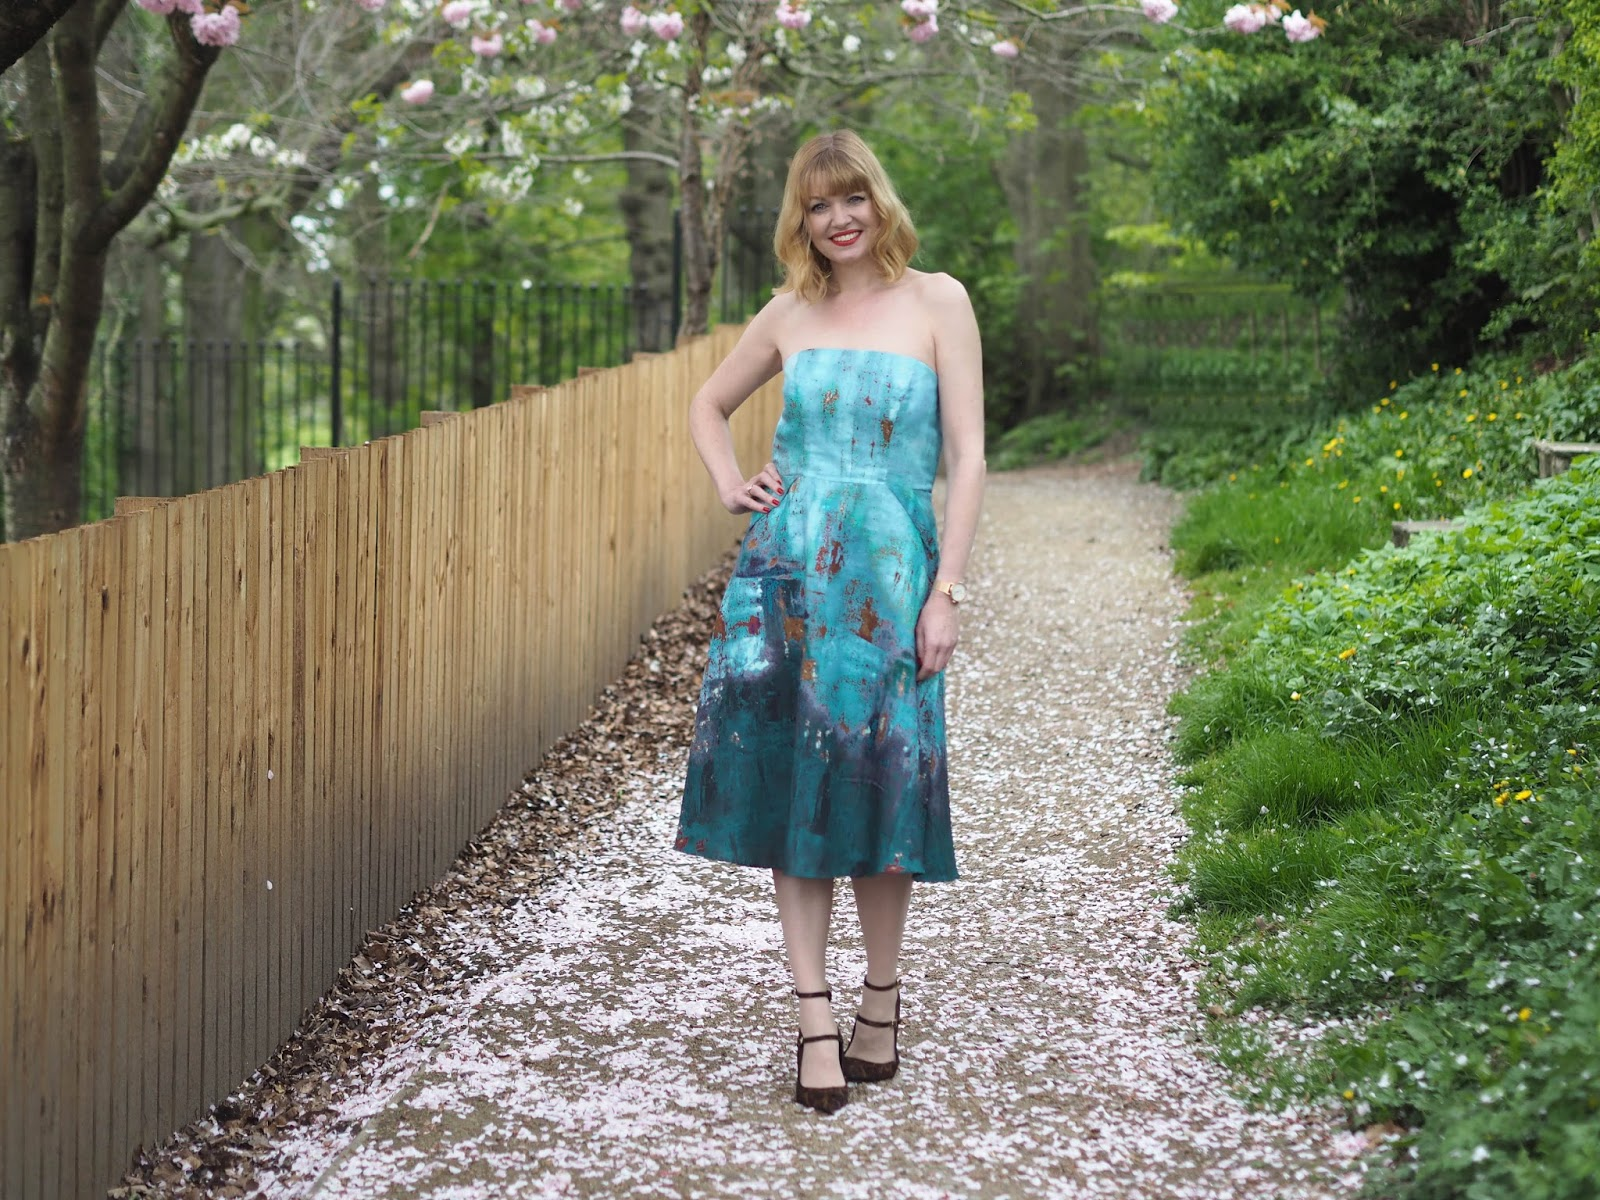 Perfect strapless dress for a spring summer wedding by Alie Street, over 40 fashion, with leopard print shoes